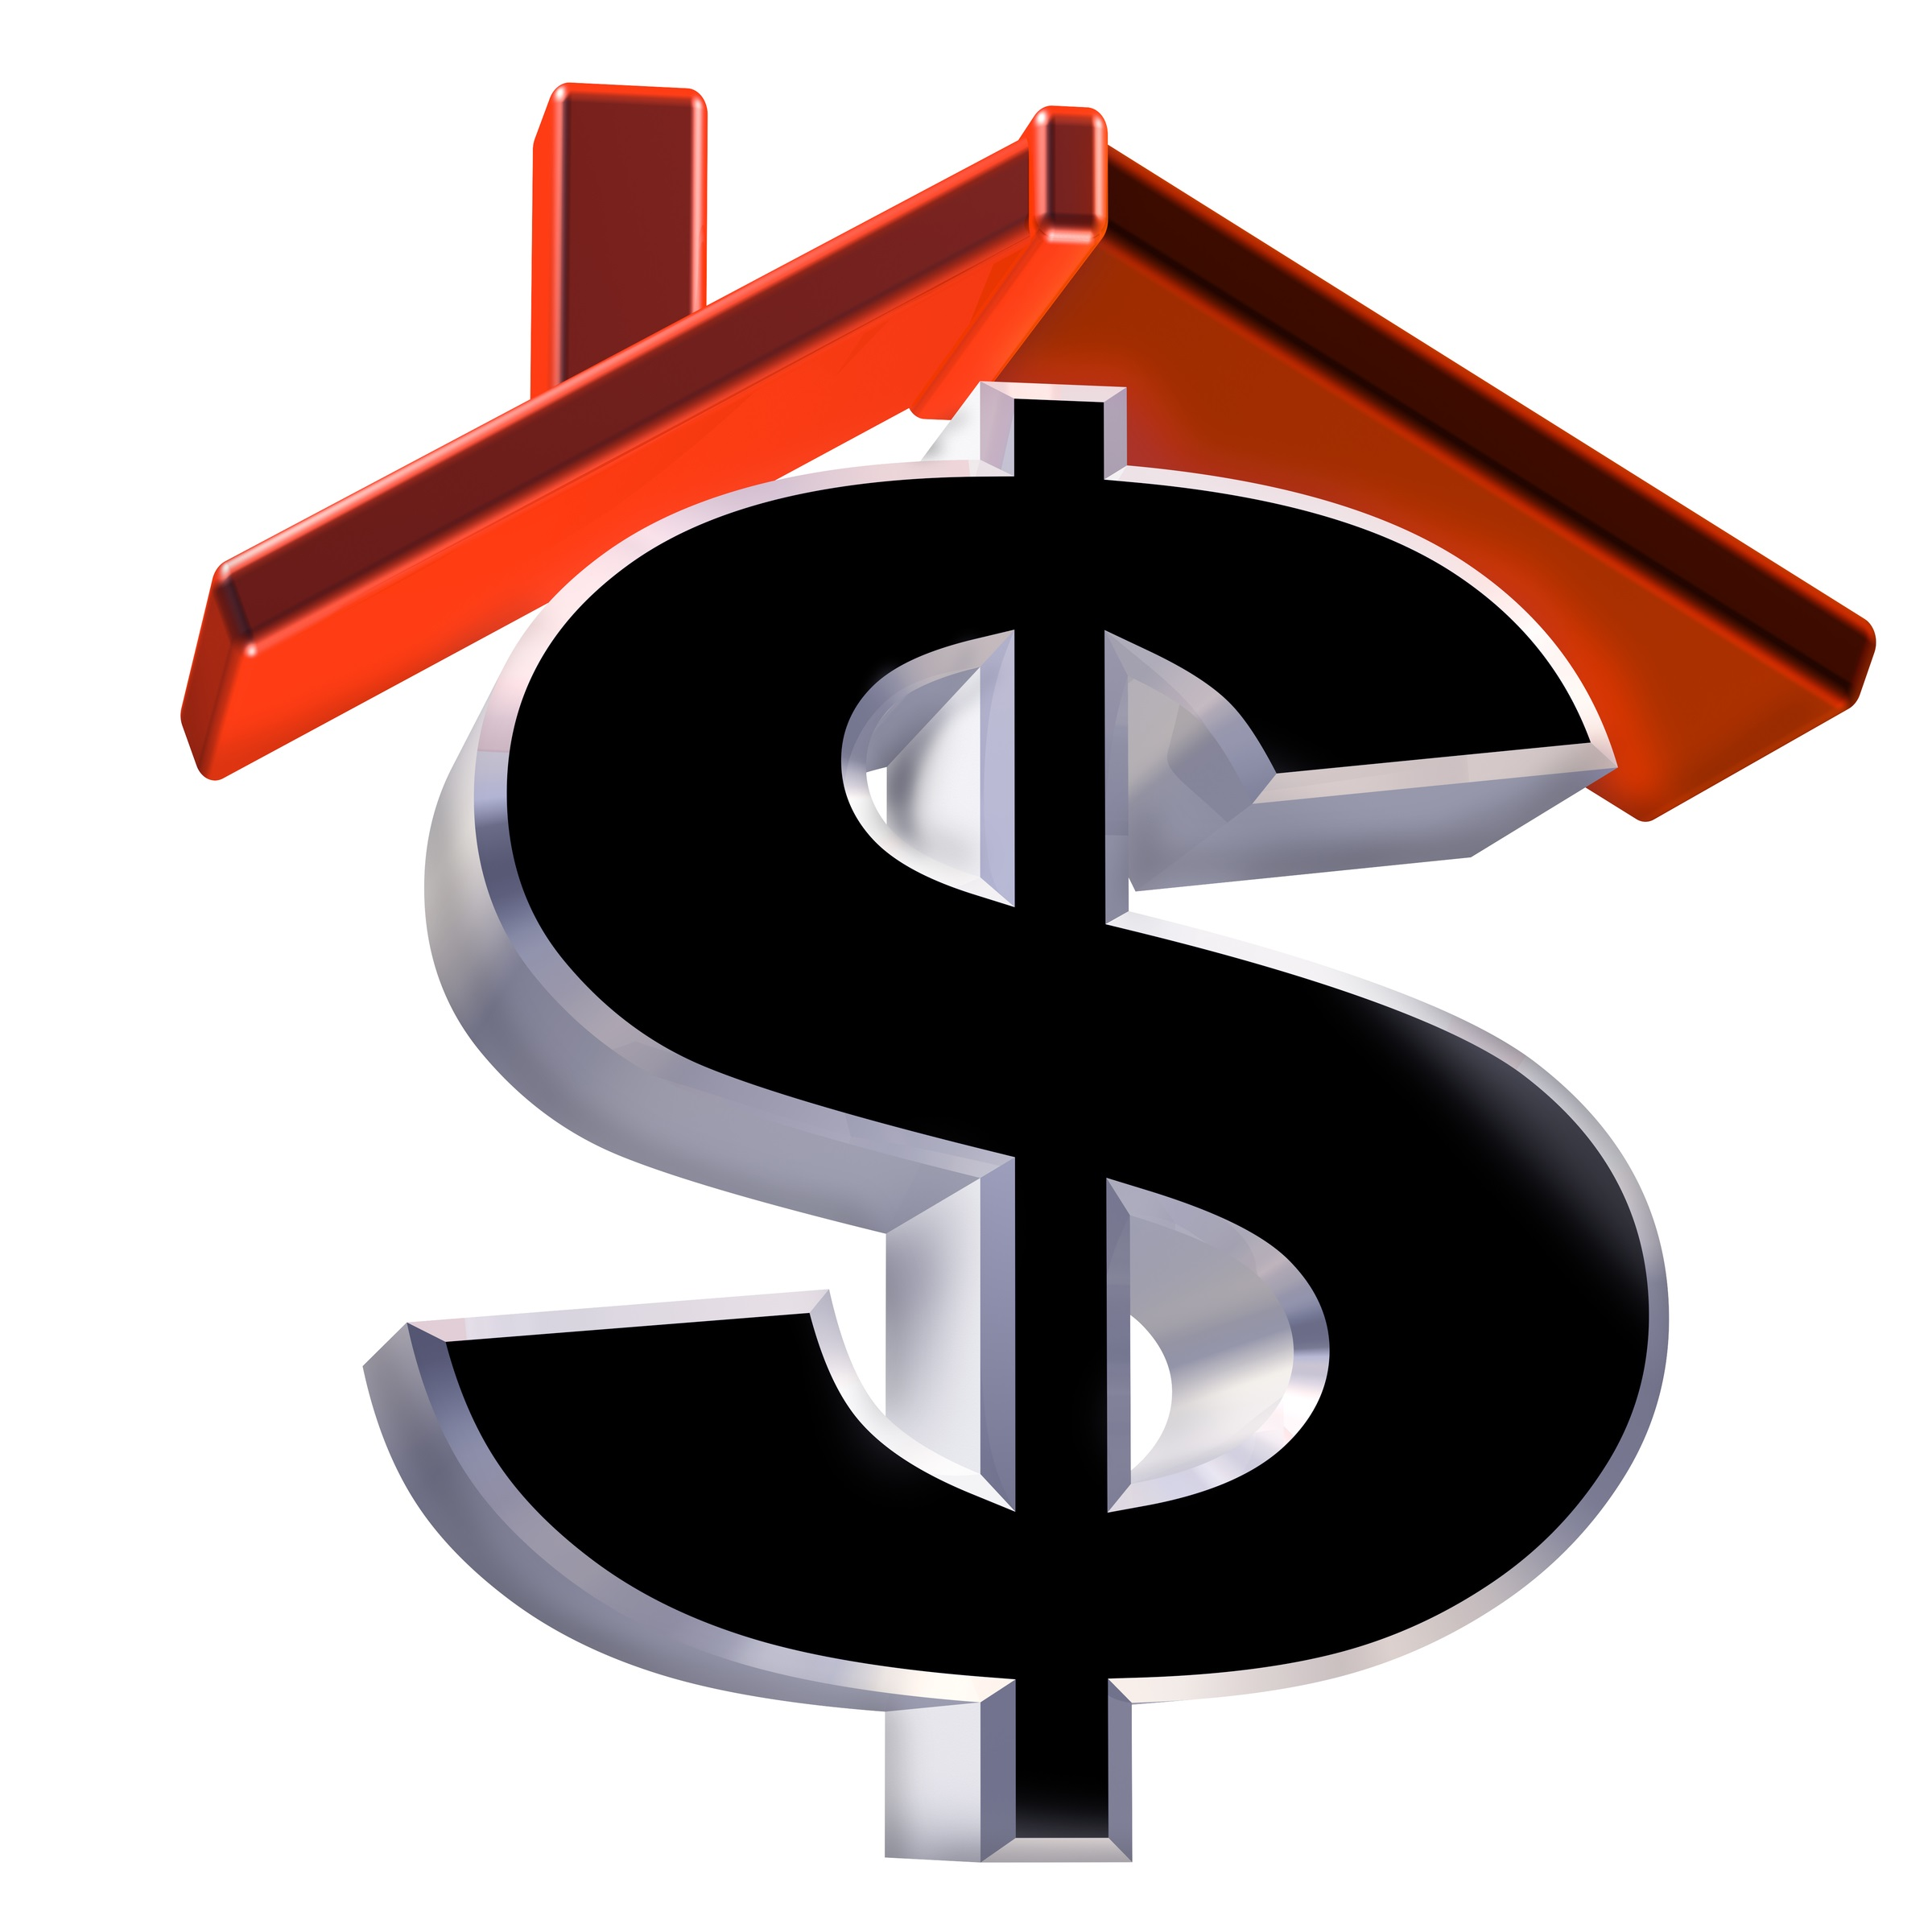 House and money symbol